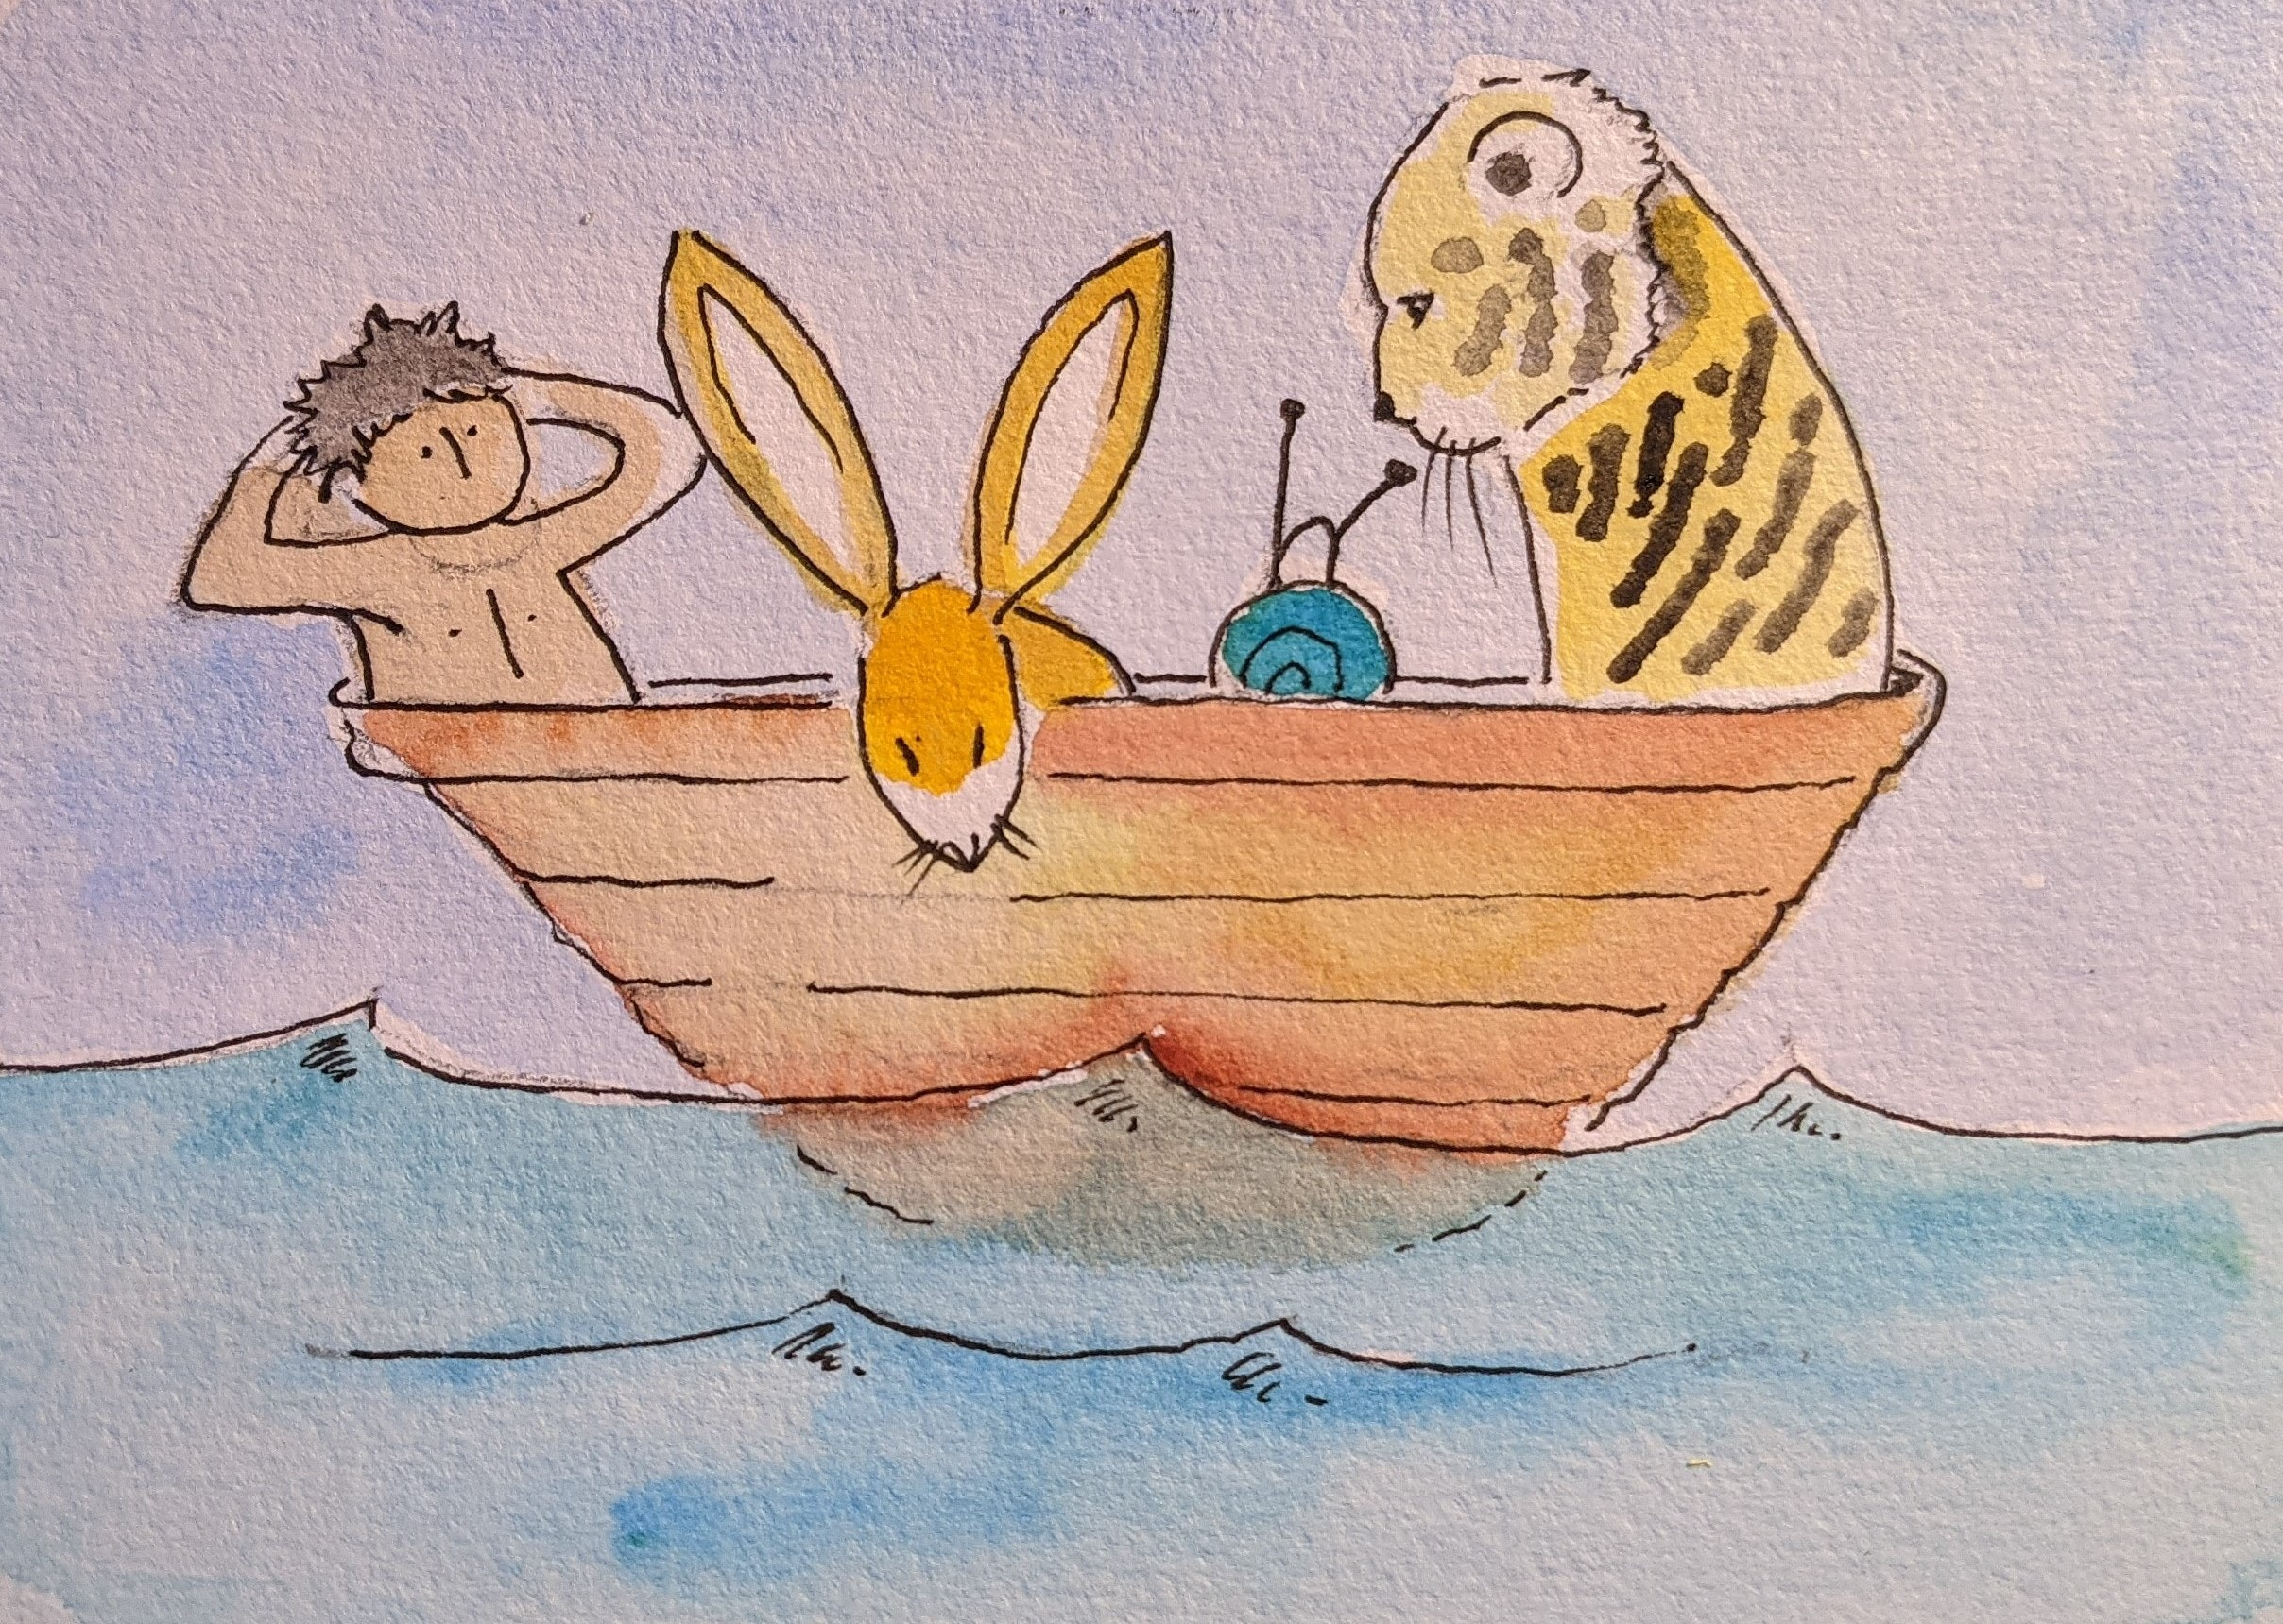 Day 36 The Life of Pi